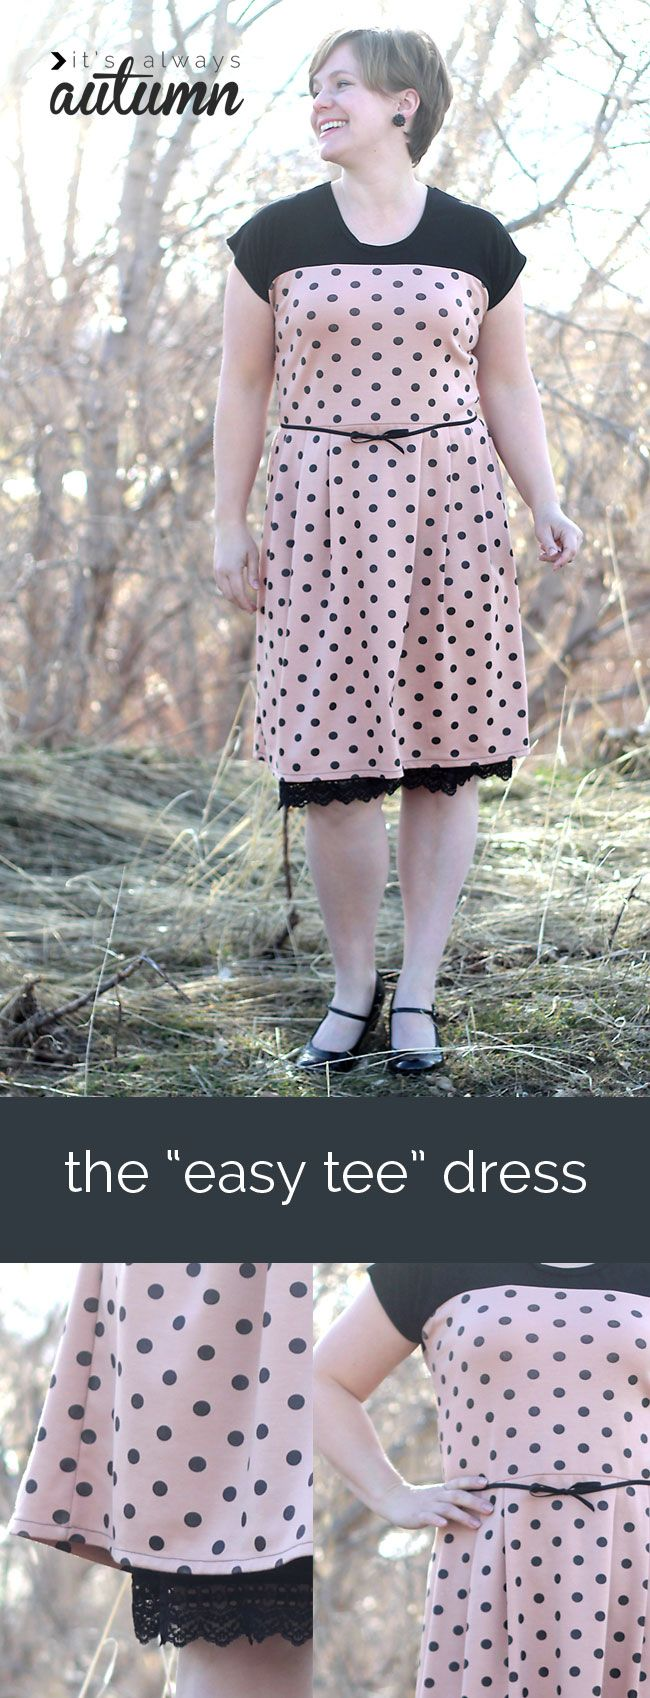 learn to make this cute retro-inspired dress from a free t-shirt pattern! sewing tutorial